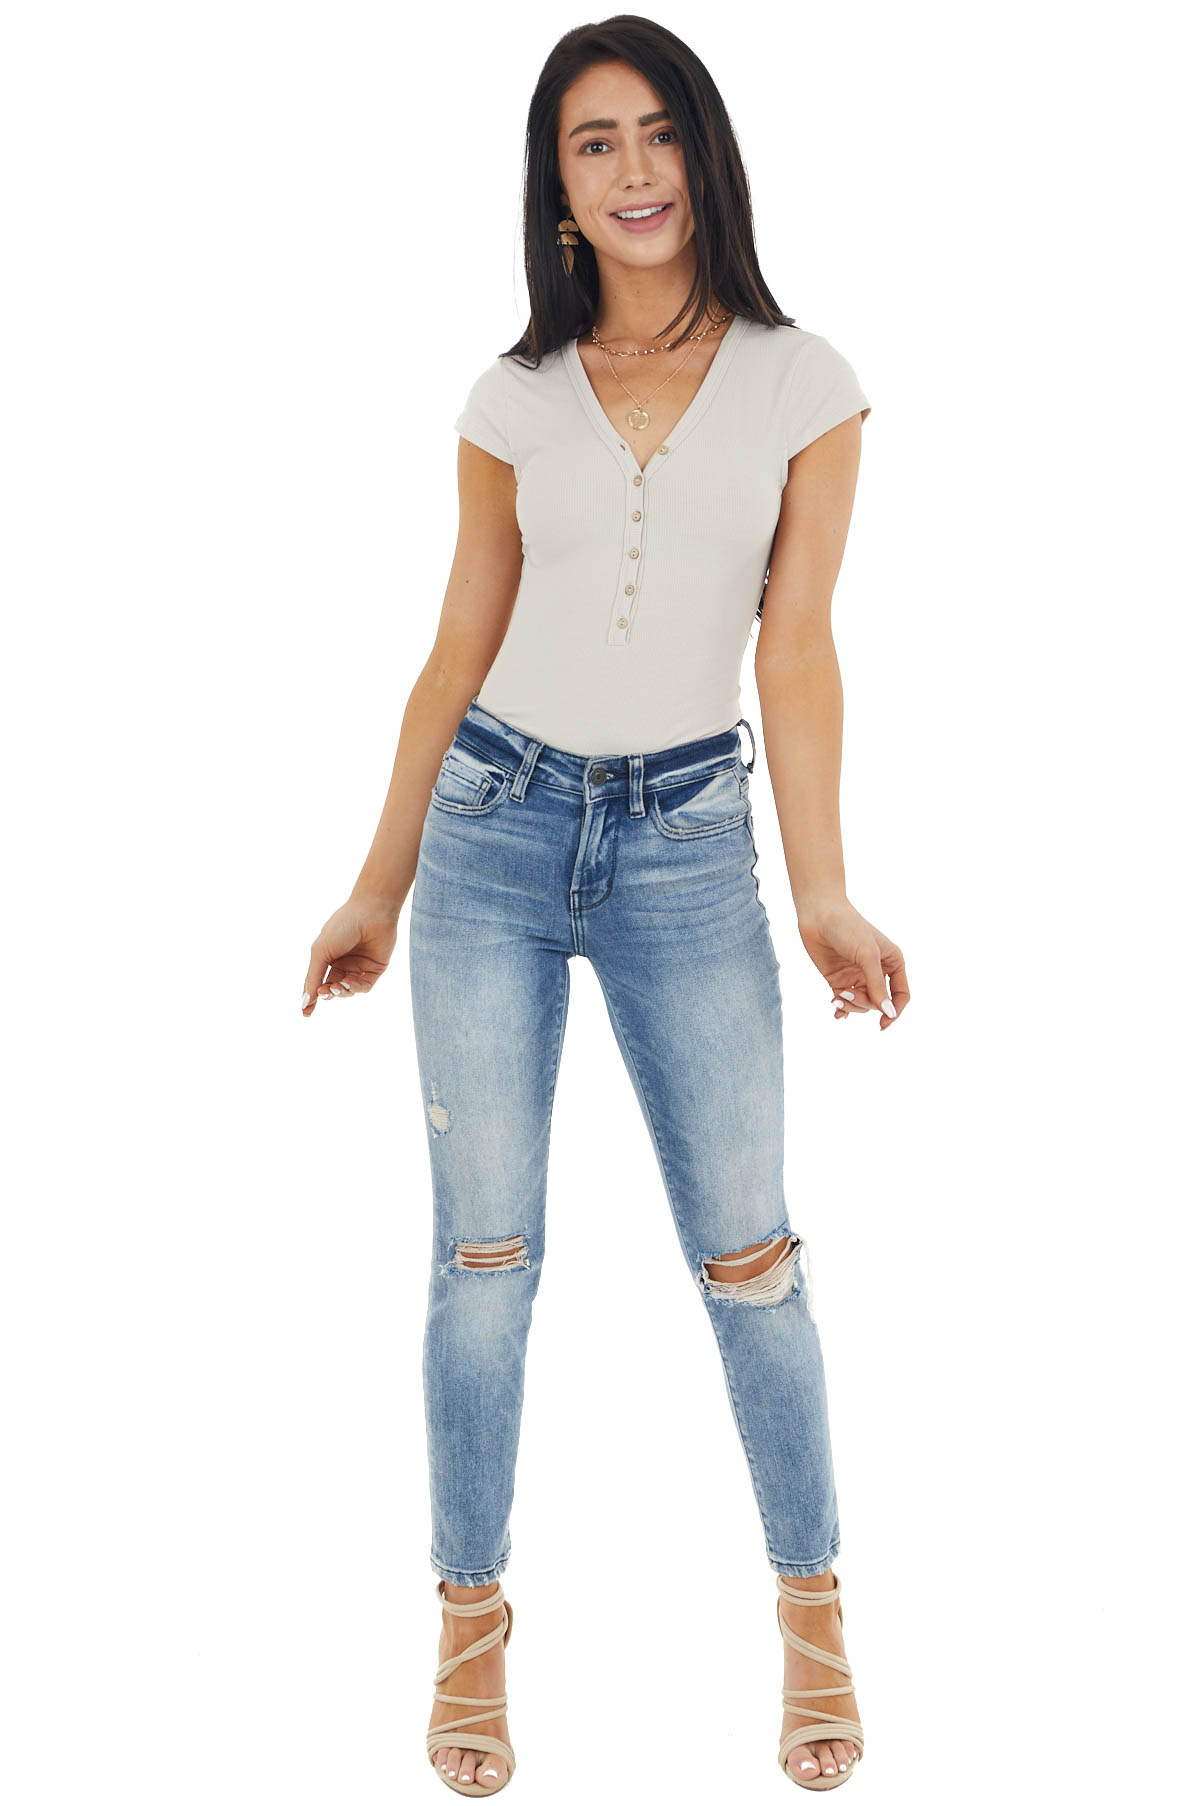 Oatmeal Ribbed Knit Button Up Bodysuit with Short Cap Sleeve